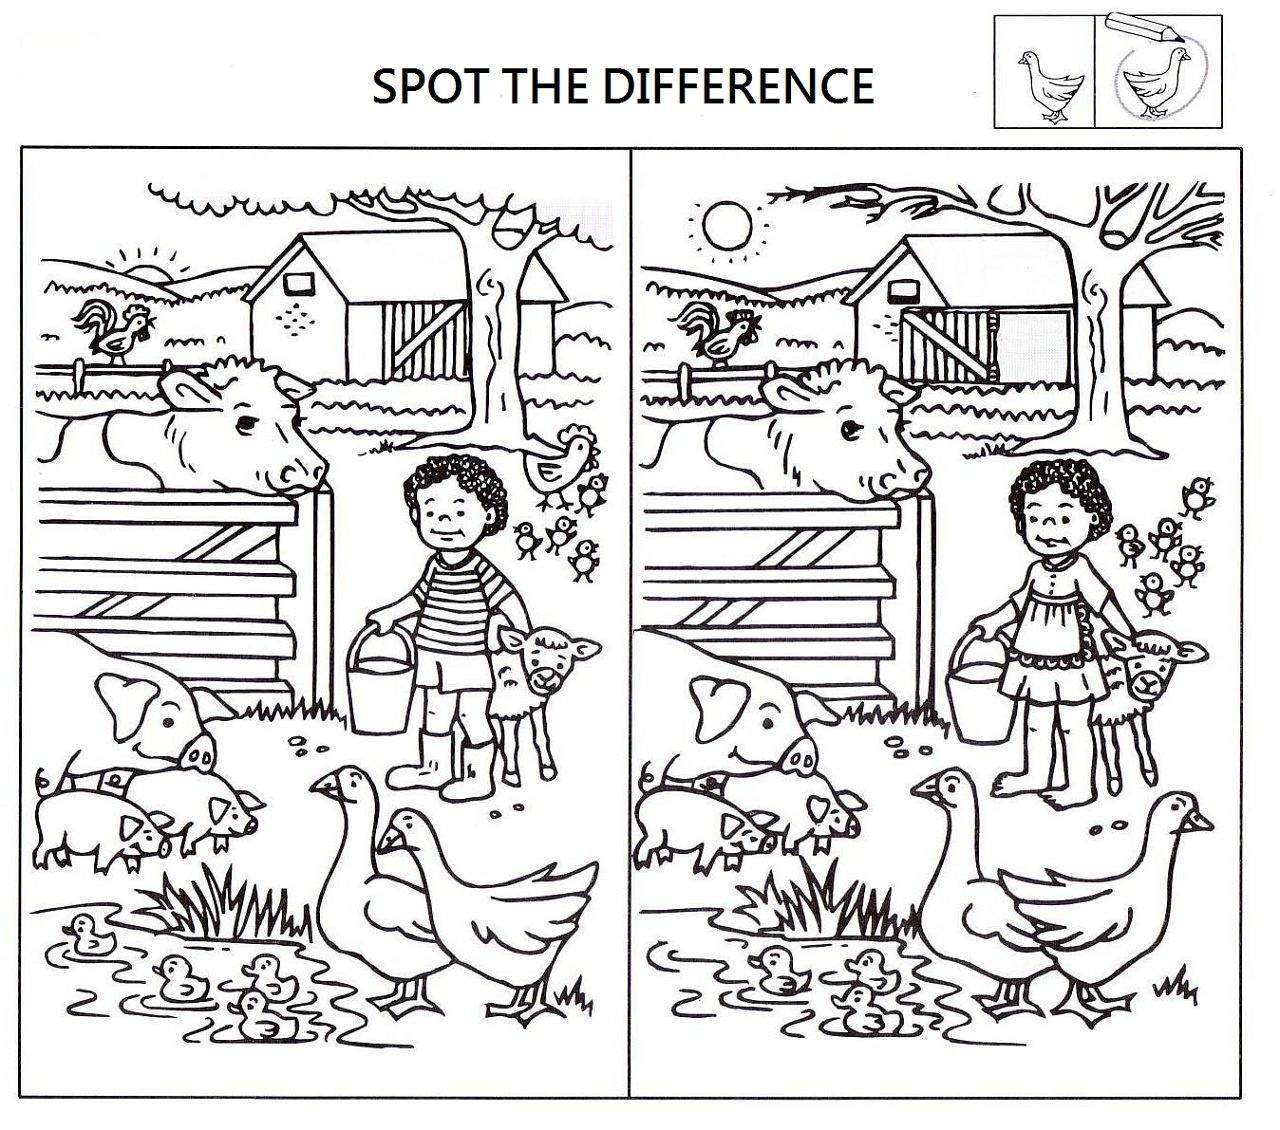 Spot The Difference Worksheets For Kids | Kids Worksheets Printable - Free Printable Spot The Difference Worksheets